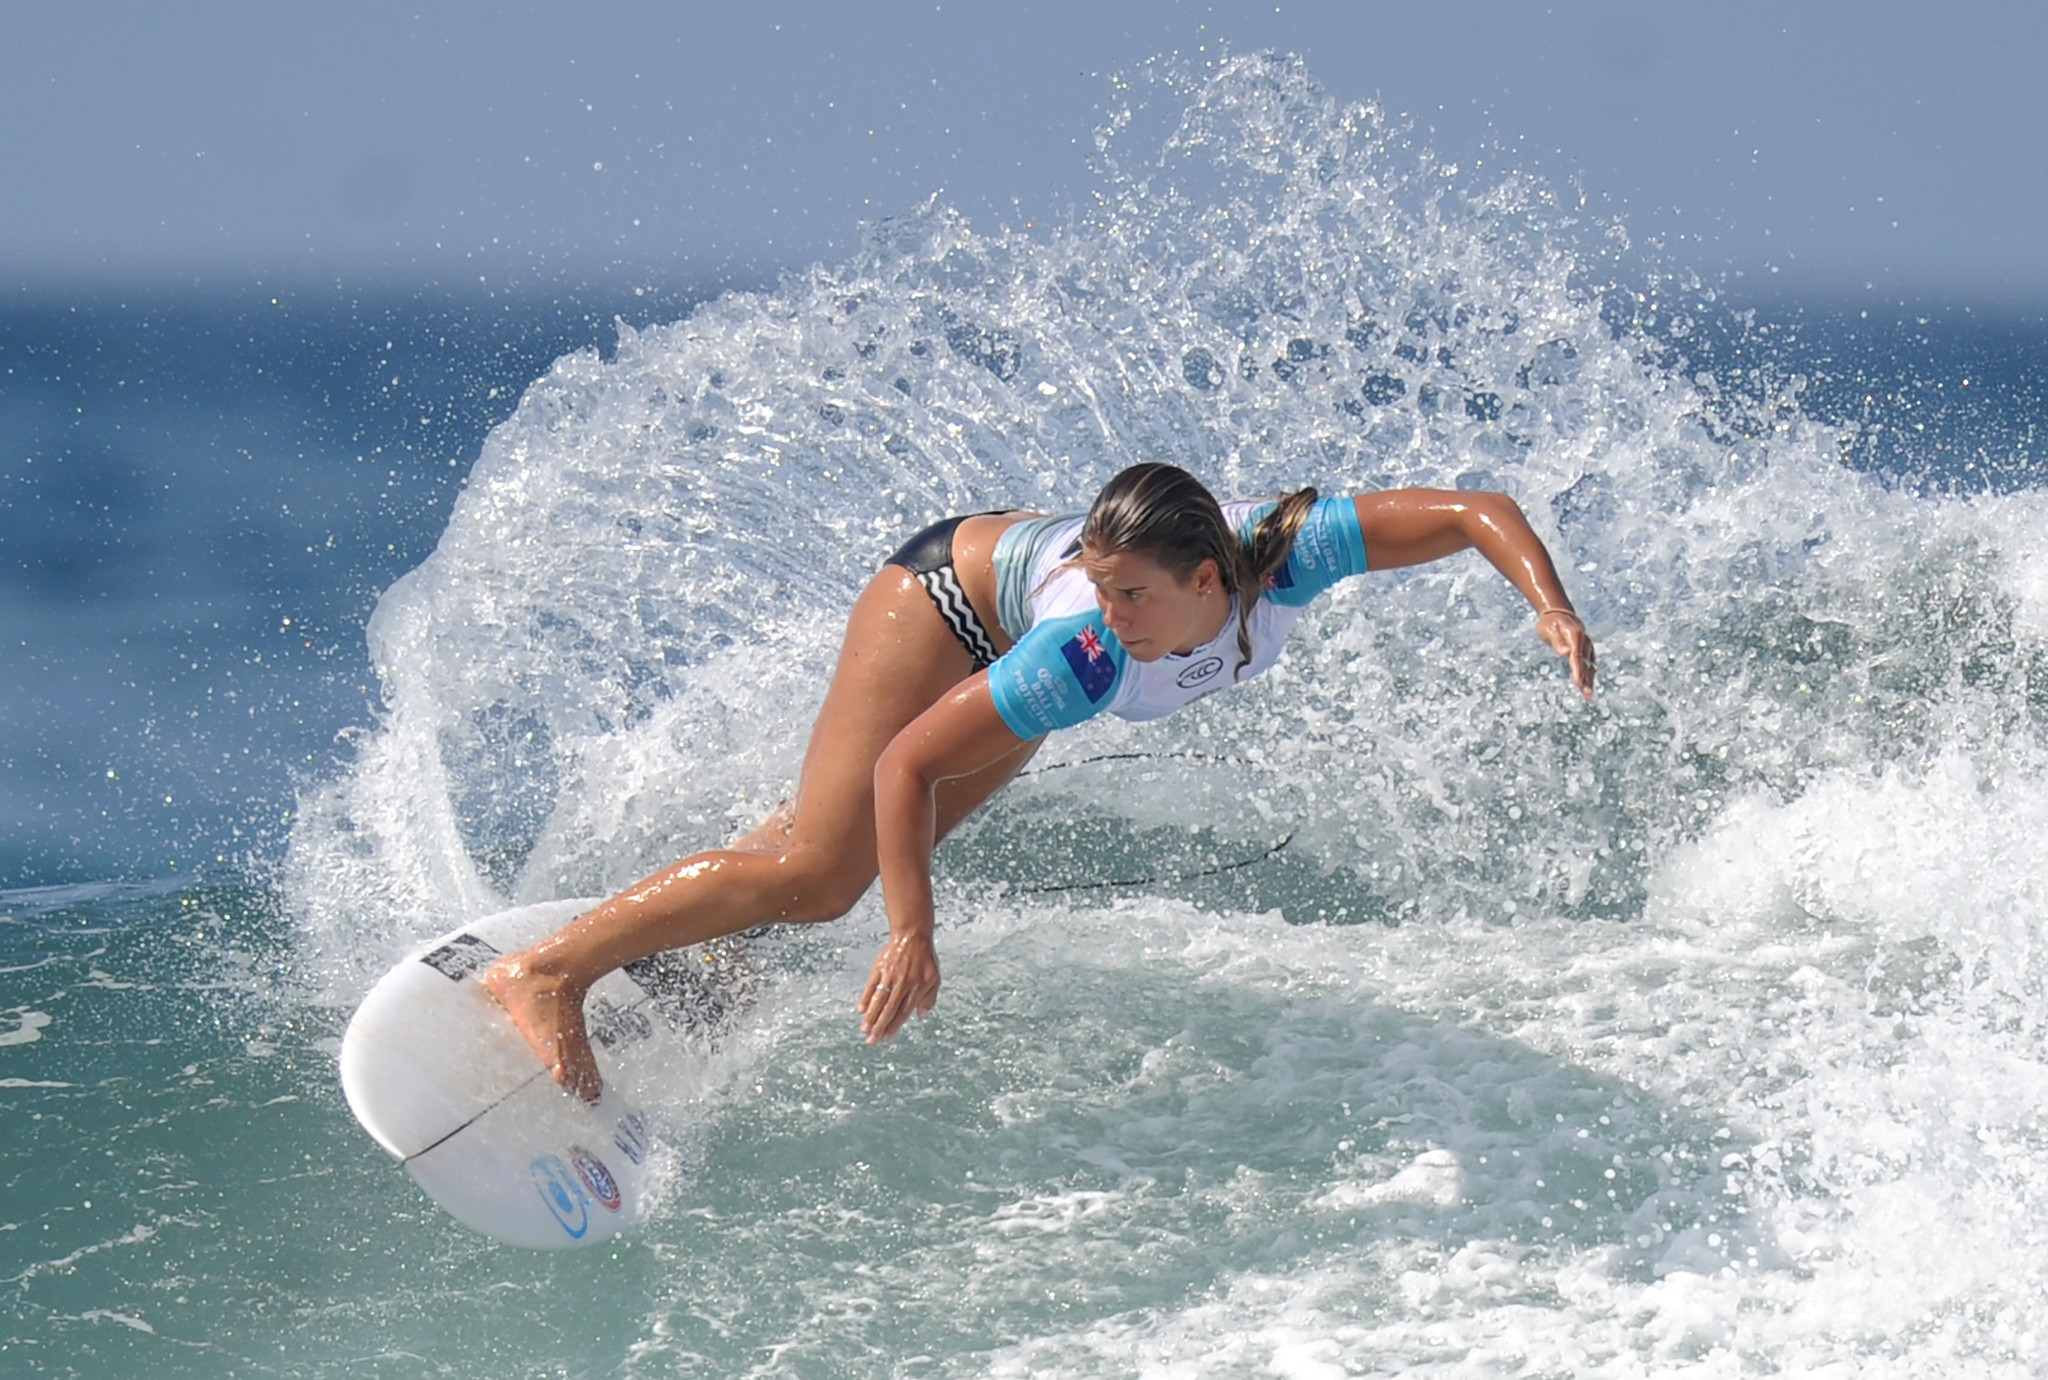 New Zealand surfer Hareb thought Olympic dream would never come